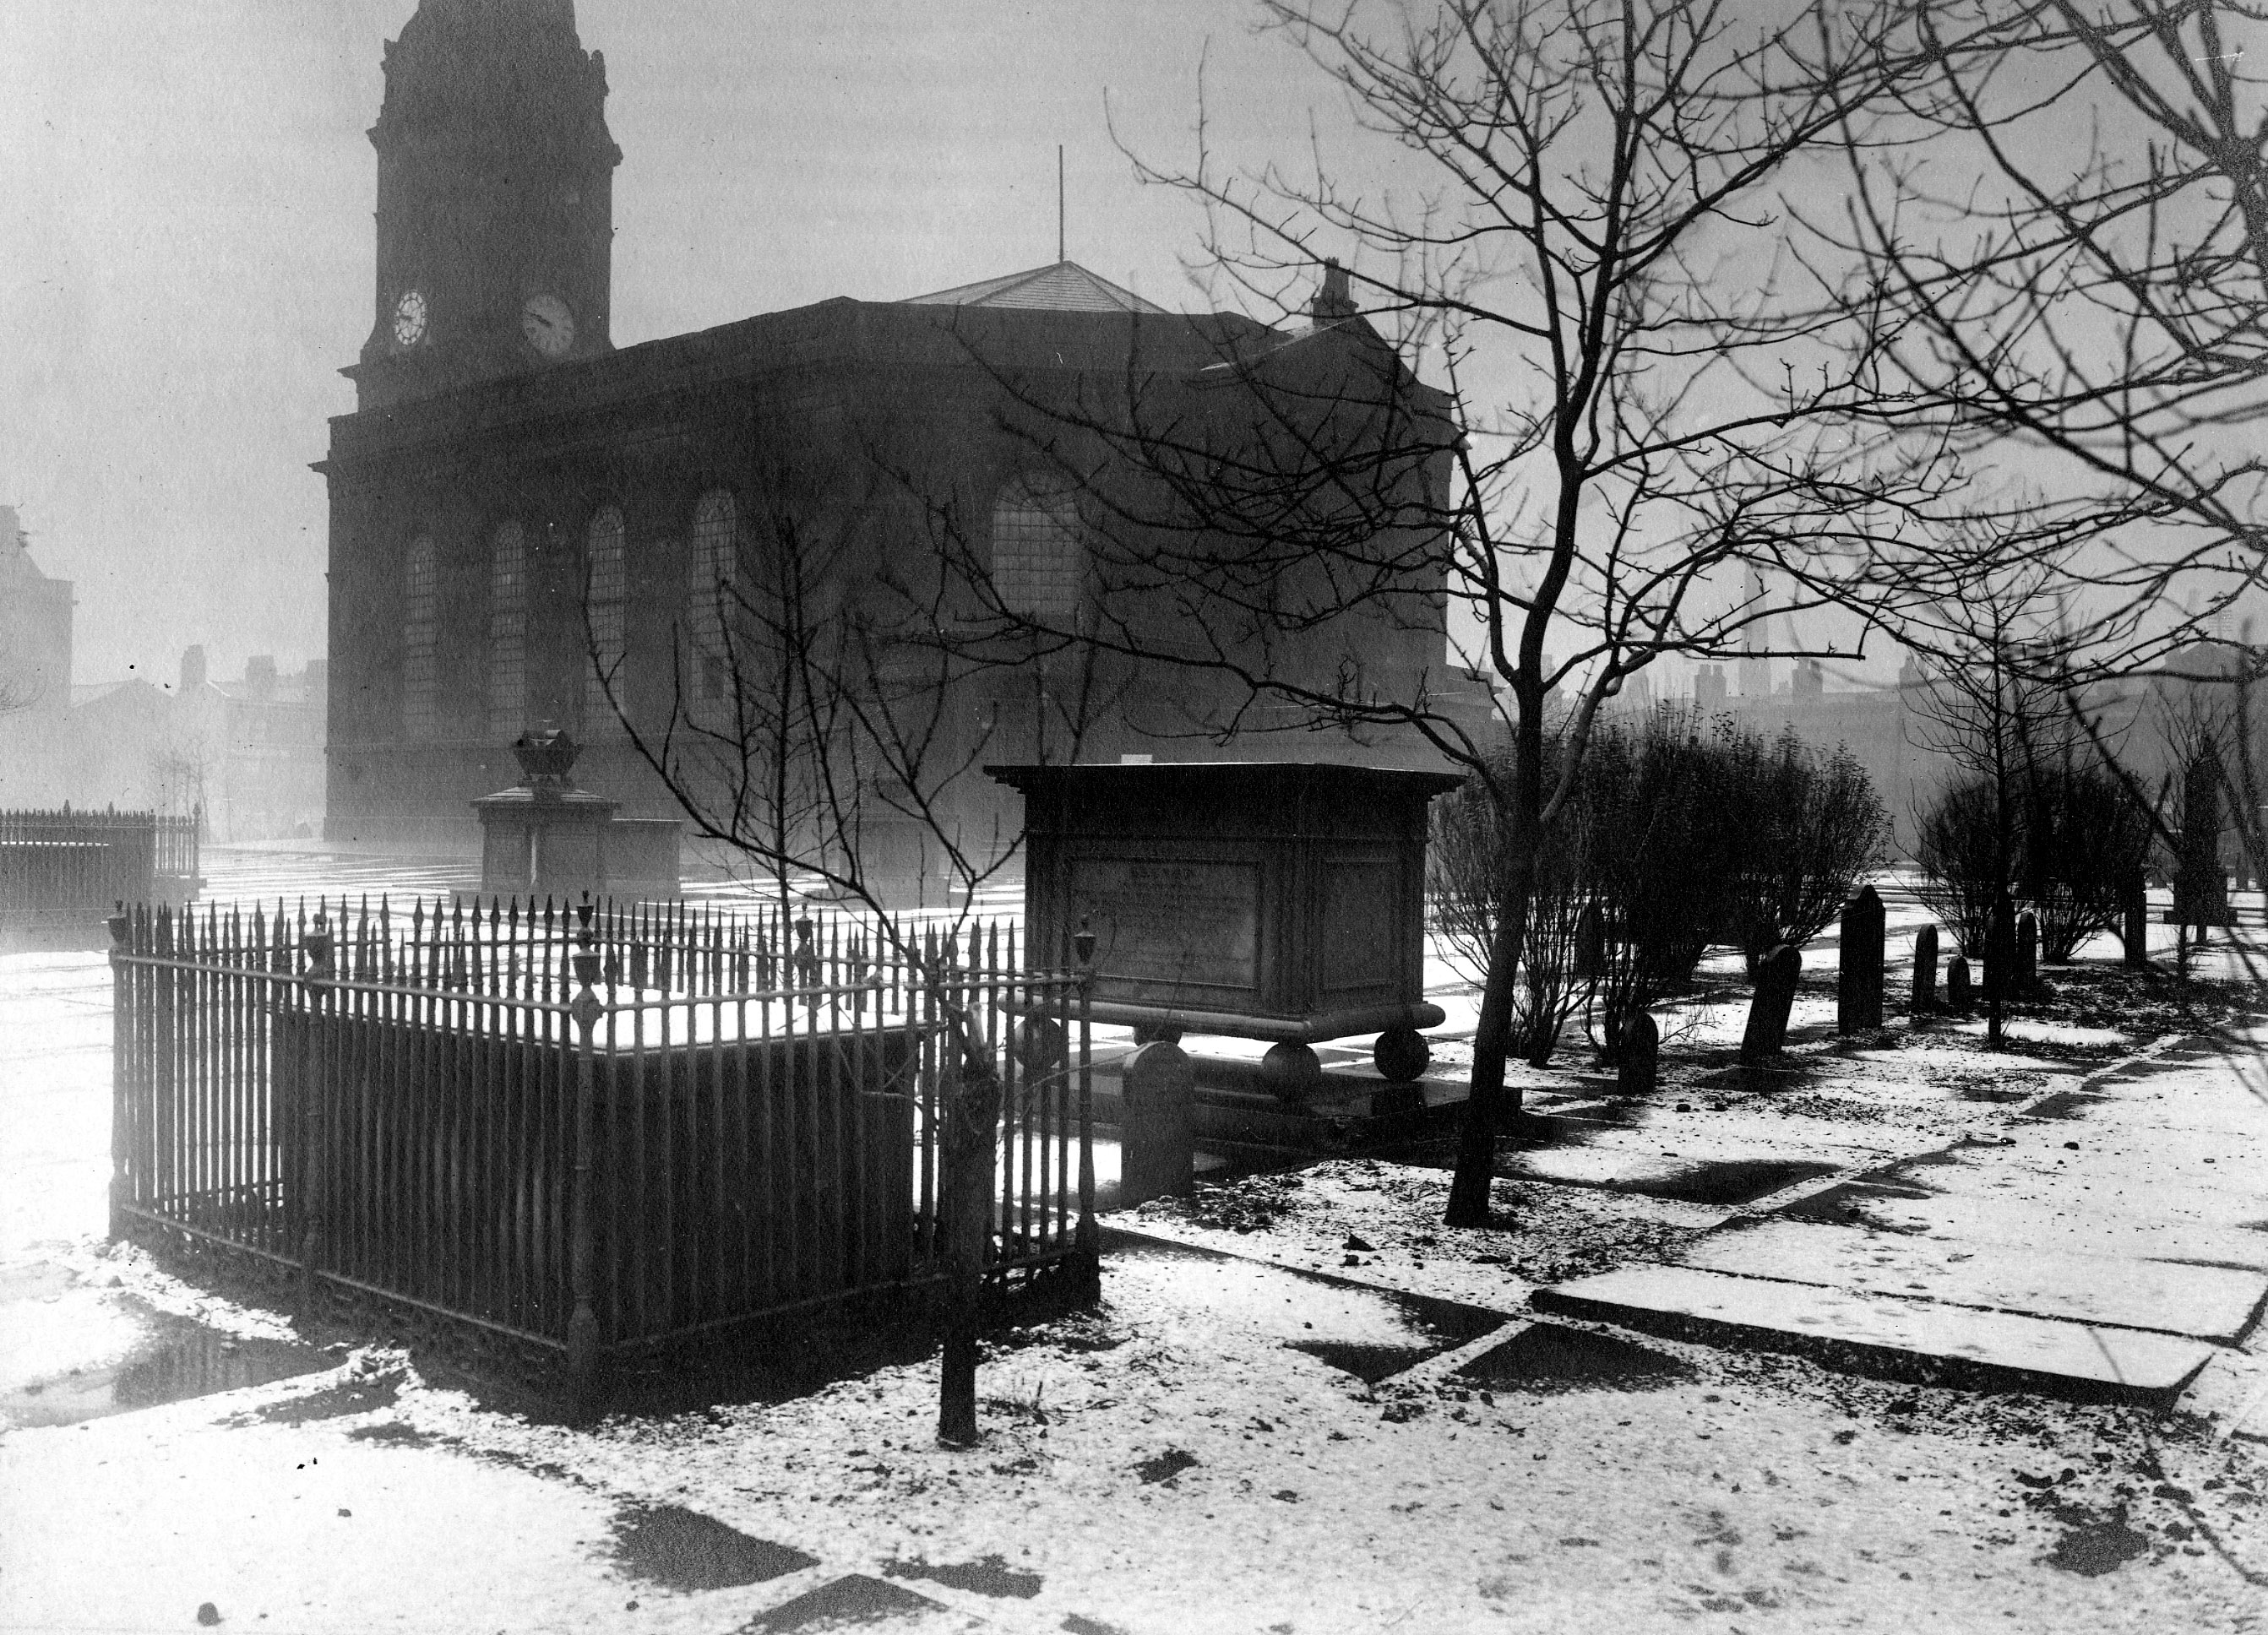 All Saints Church 1910 (Image courtesy of Manchester Libraries and Archives)